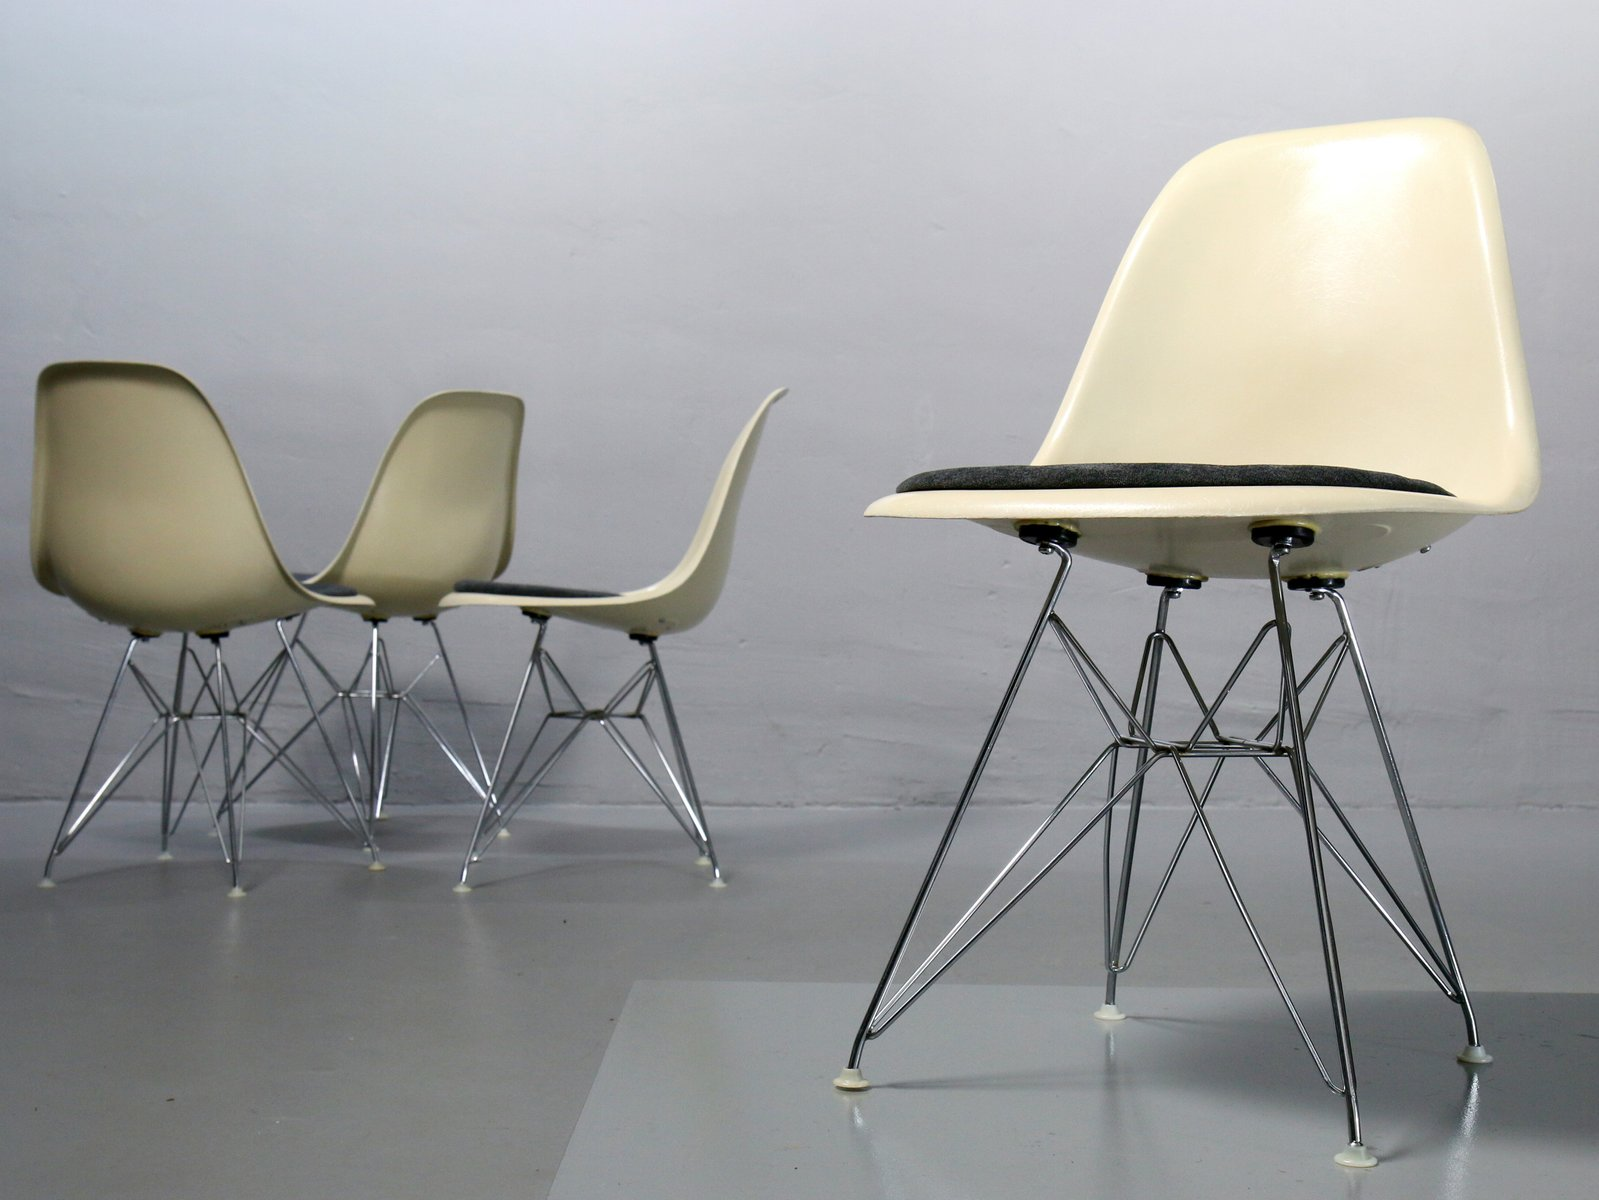 Vintage Side Chair By Charles U0026 Ray Eames For Vitra